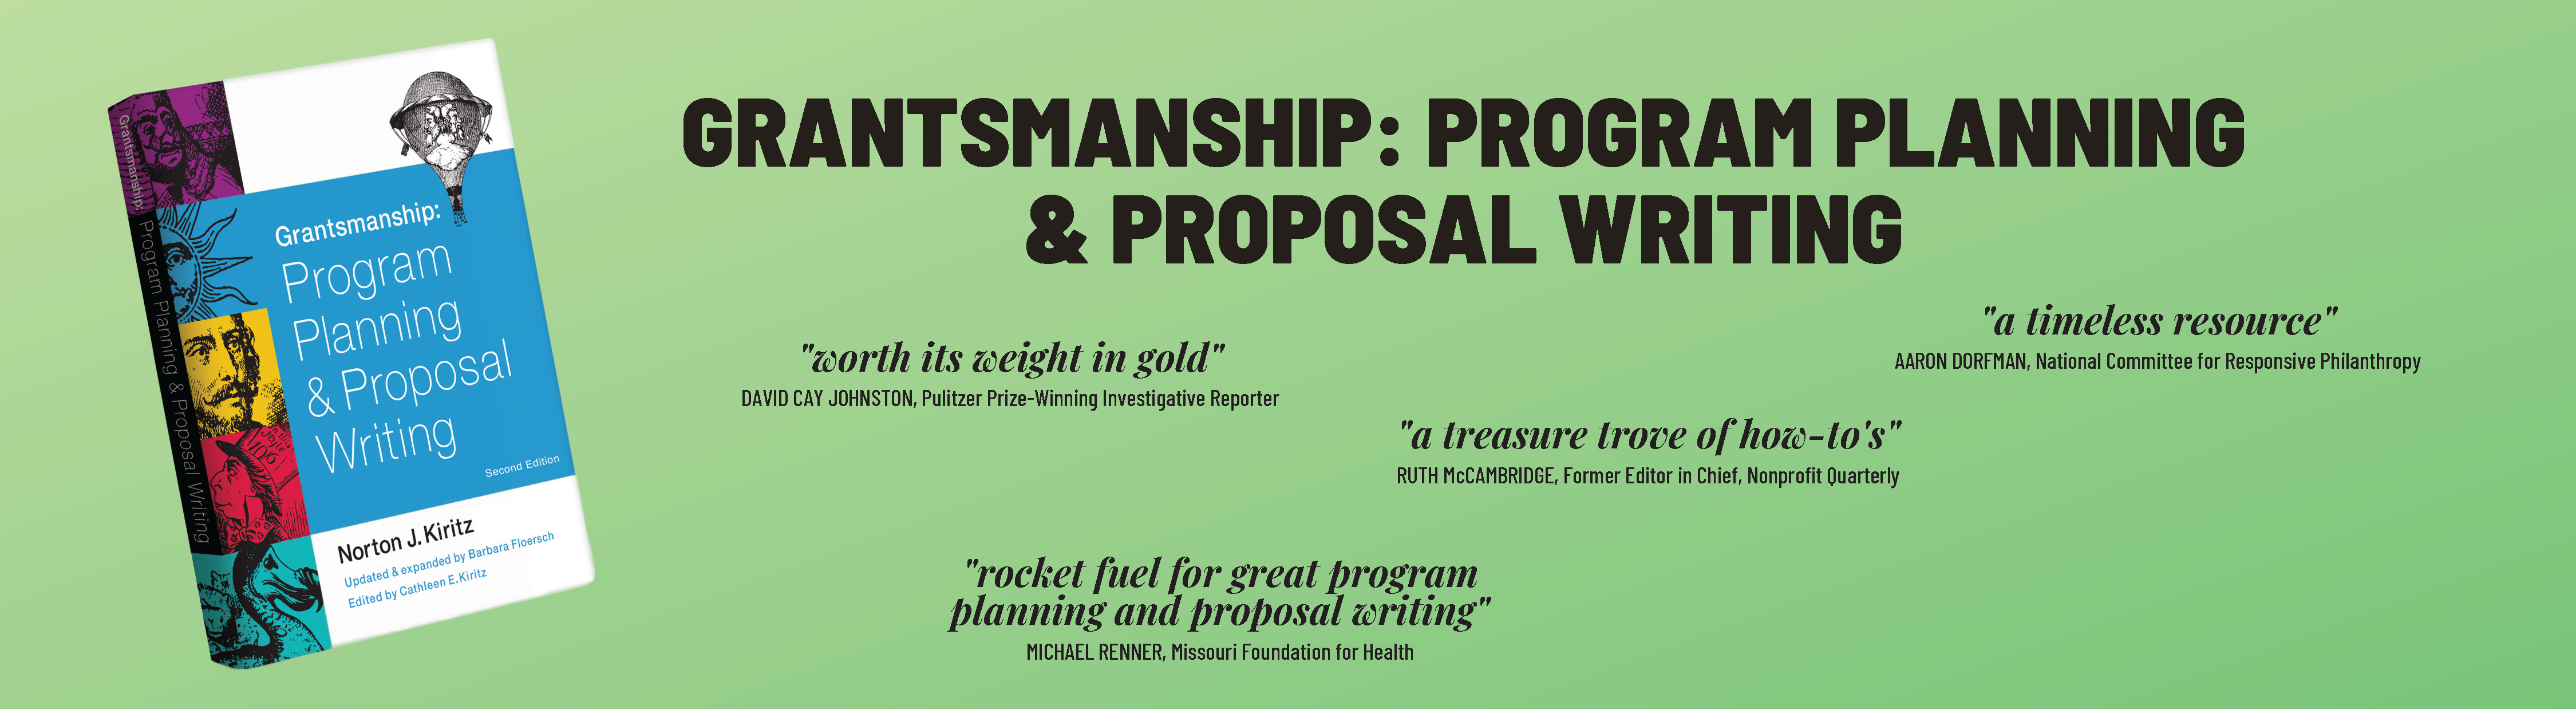 """Grantsmanship: Program Planning & Proposal Writing. """"Worth its weight in gold."""" David Cay Johnston, Pulitzer Prize-Winning Investigative Reporter; """"A timeless resource."""" Aaron Dorfman, National Committee for Responsive Philanthropy; """"A treasure trove of how-to's."""" Rith McCambridge, Former Editor in Chief, Nonprofit Quarterly; """"Rocket fuel for great program planning and proposal writing."""" Michael Renner, Missouri Foundation for Health"""